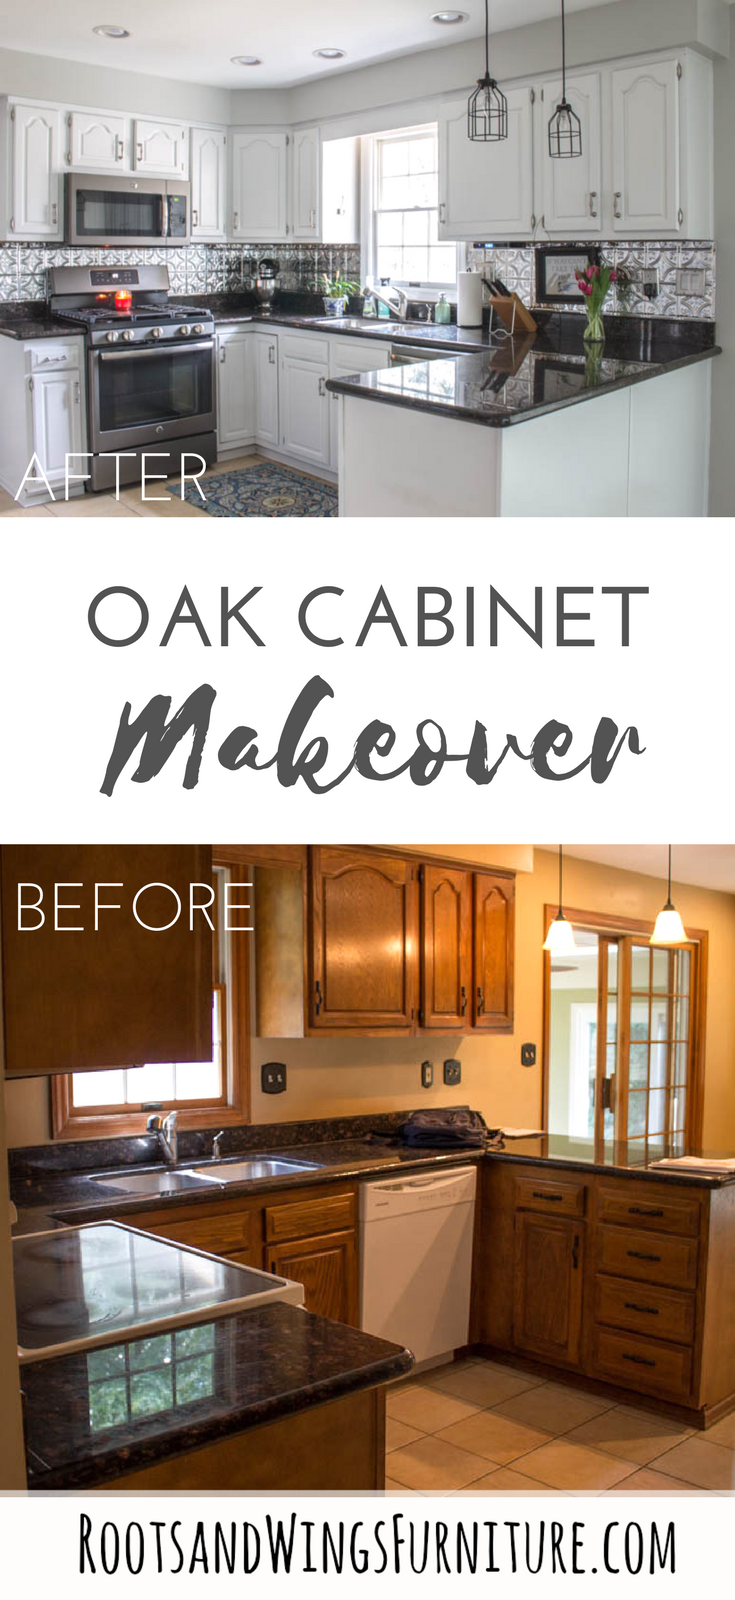 How To Paint Oak Kitchen Cabinets White Without Bleed Through The Best Way To Paint And Prim Kitchen Cabinets Makeover New Kitchen Cabinets Kitchen Renovation